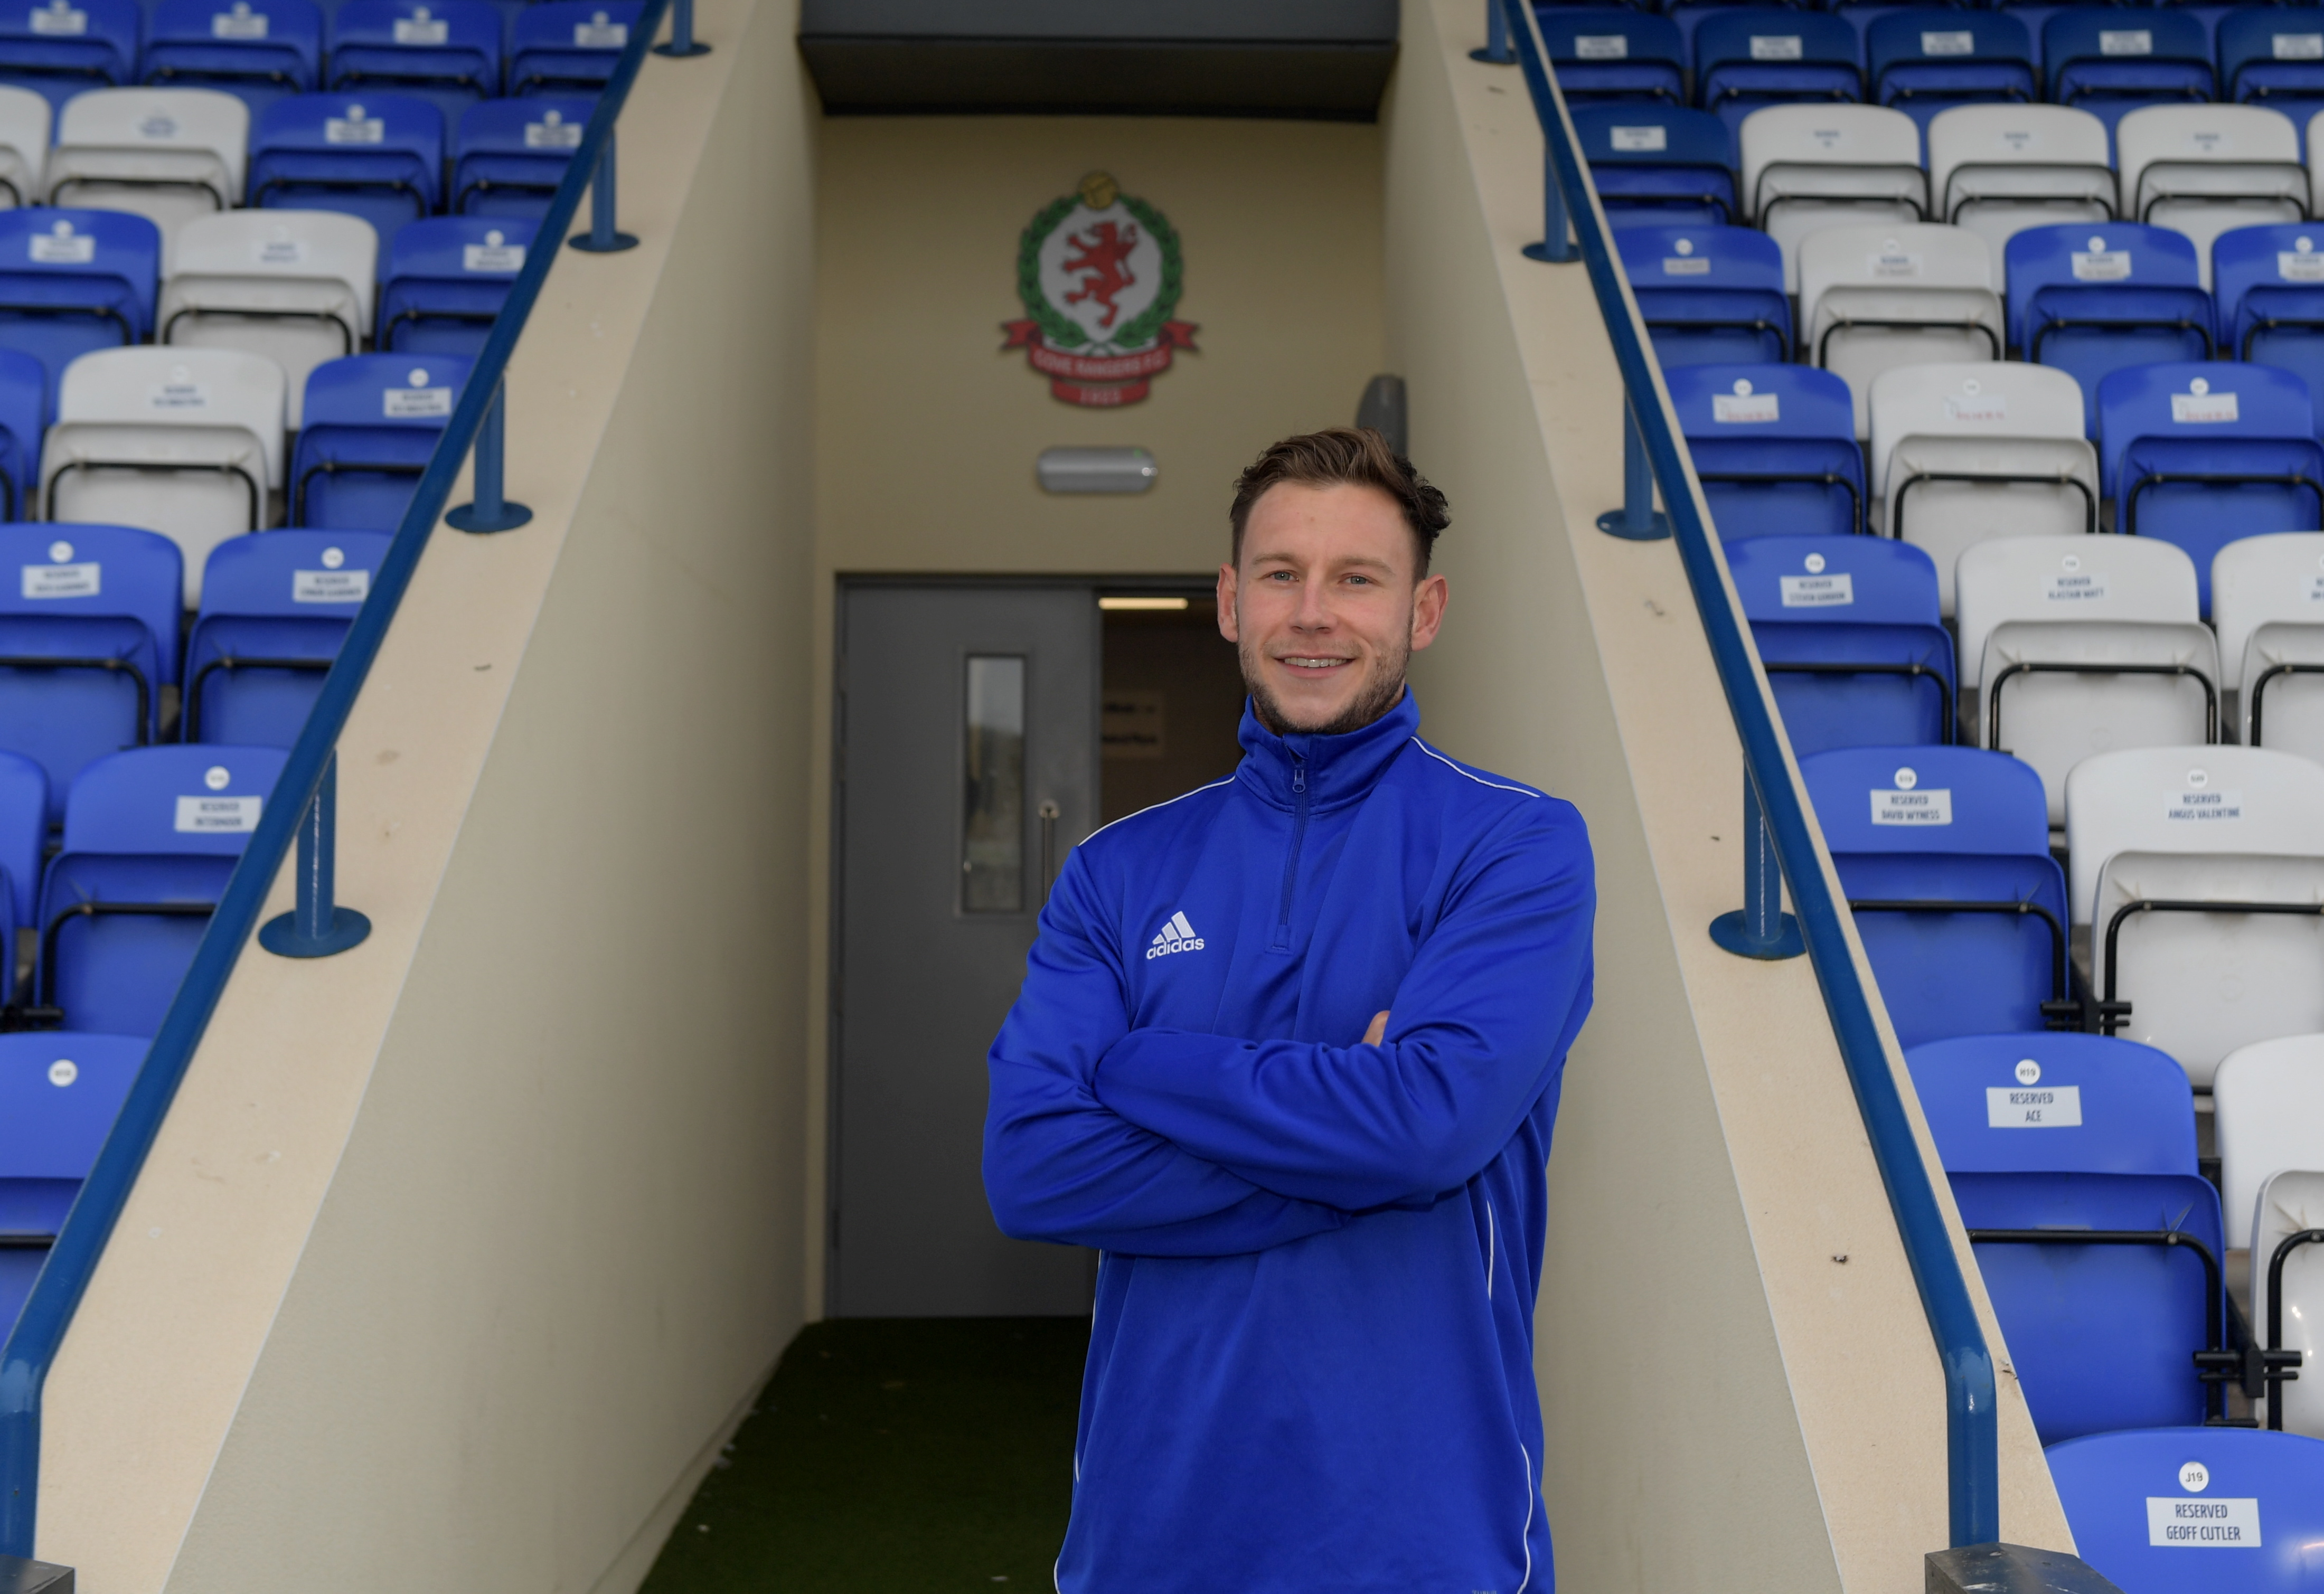 Cove Rangers captain Mitch Megginson limped out of the warm-up at Borough Briggs.